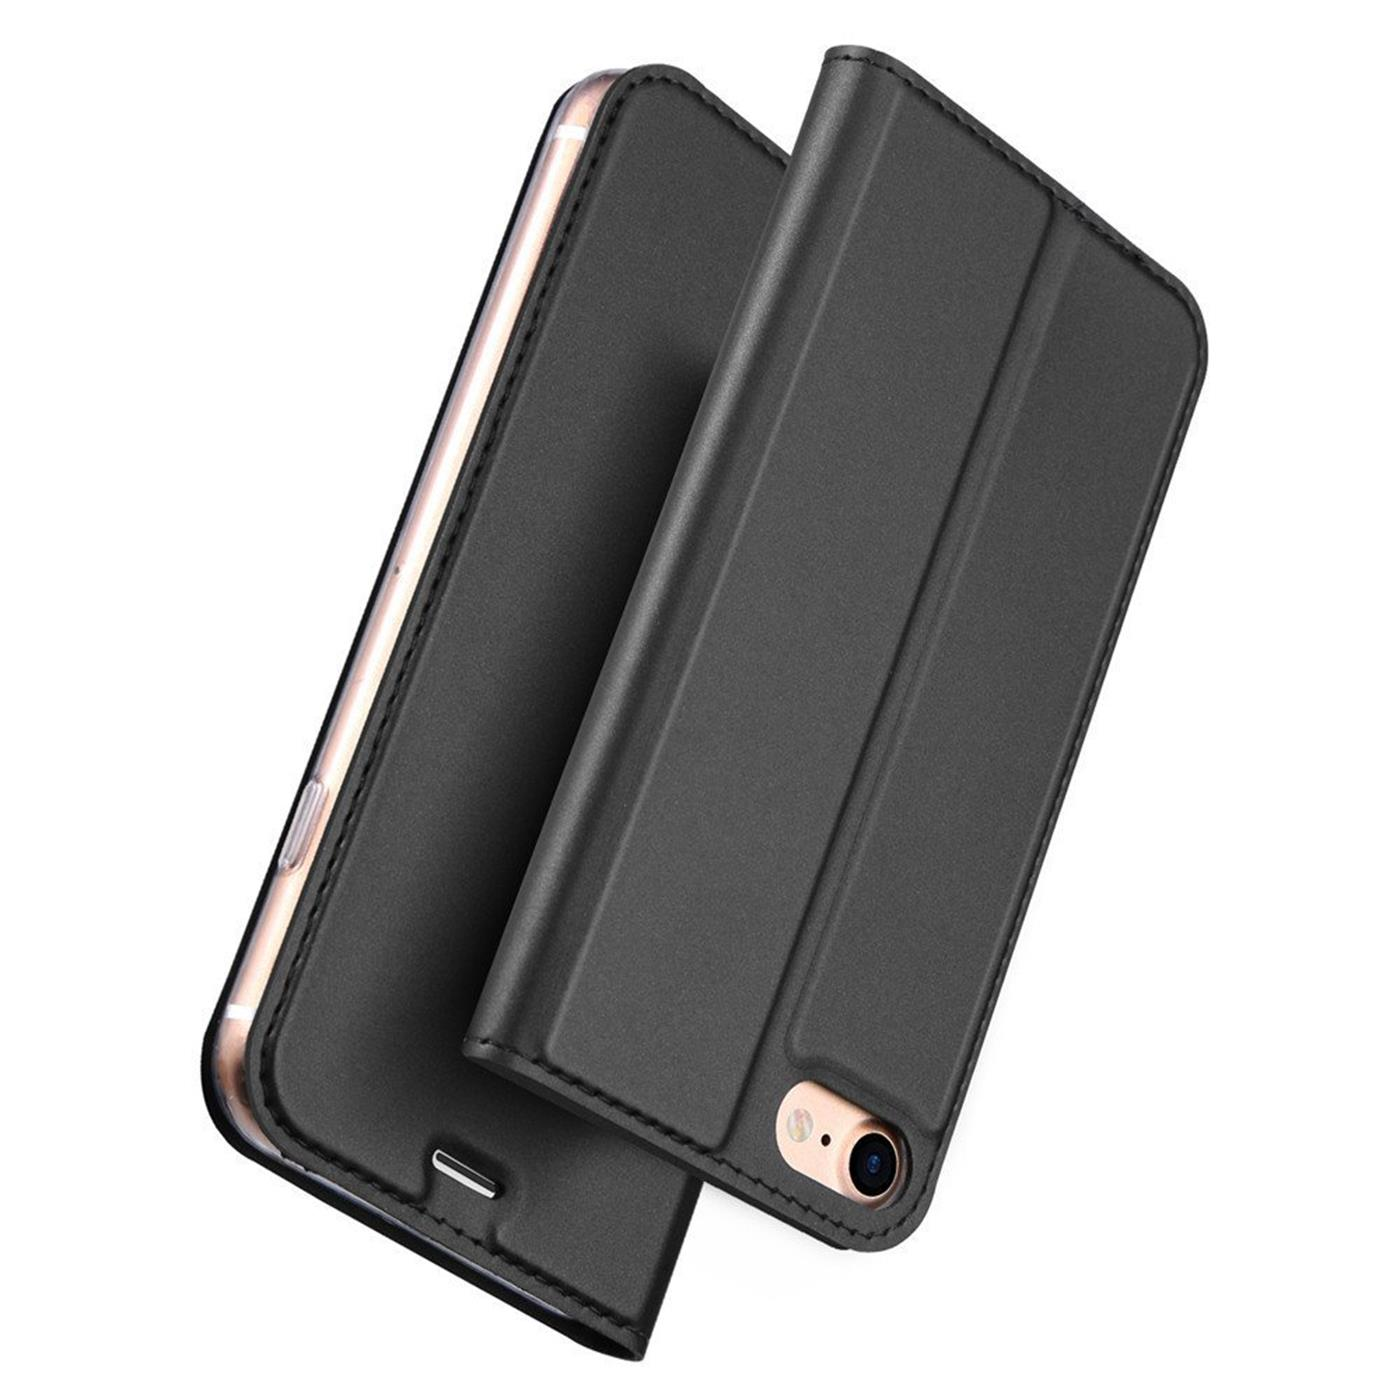 Handy-Huelle-fuer-iPhone-7-iPhone-8-Book-Case-Schutzhuelle-Tasche-Slim-Flip-Cover Indexbild 9